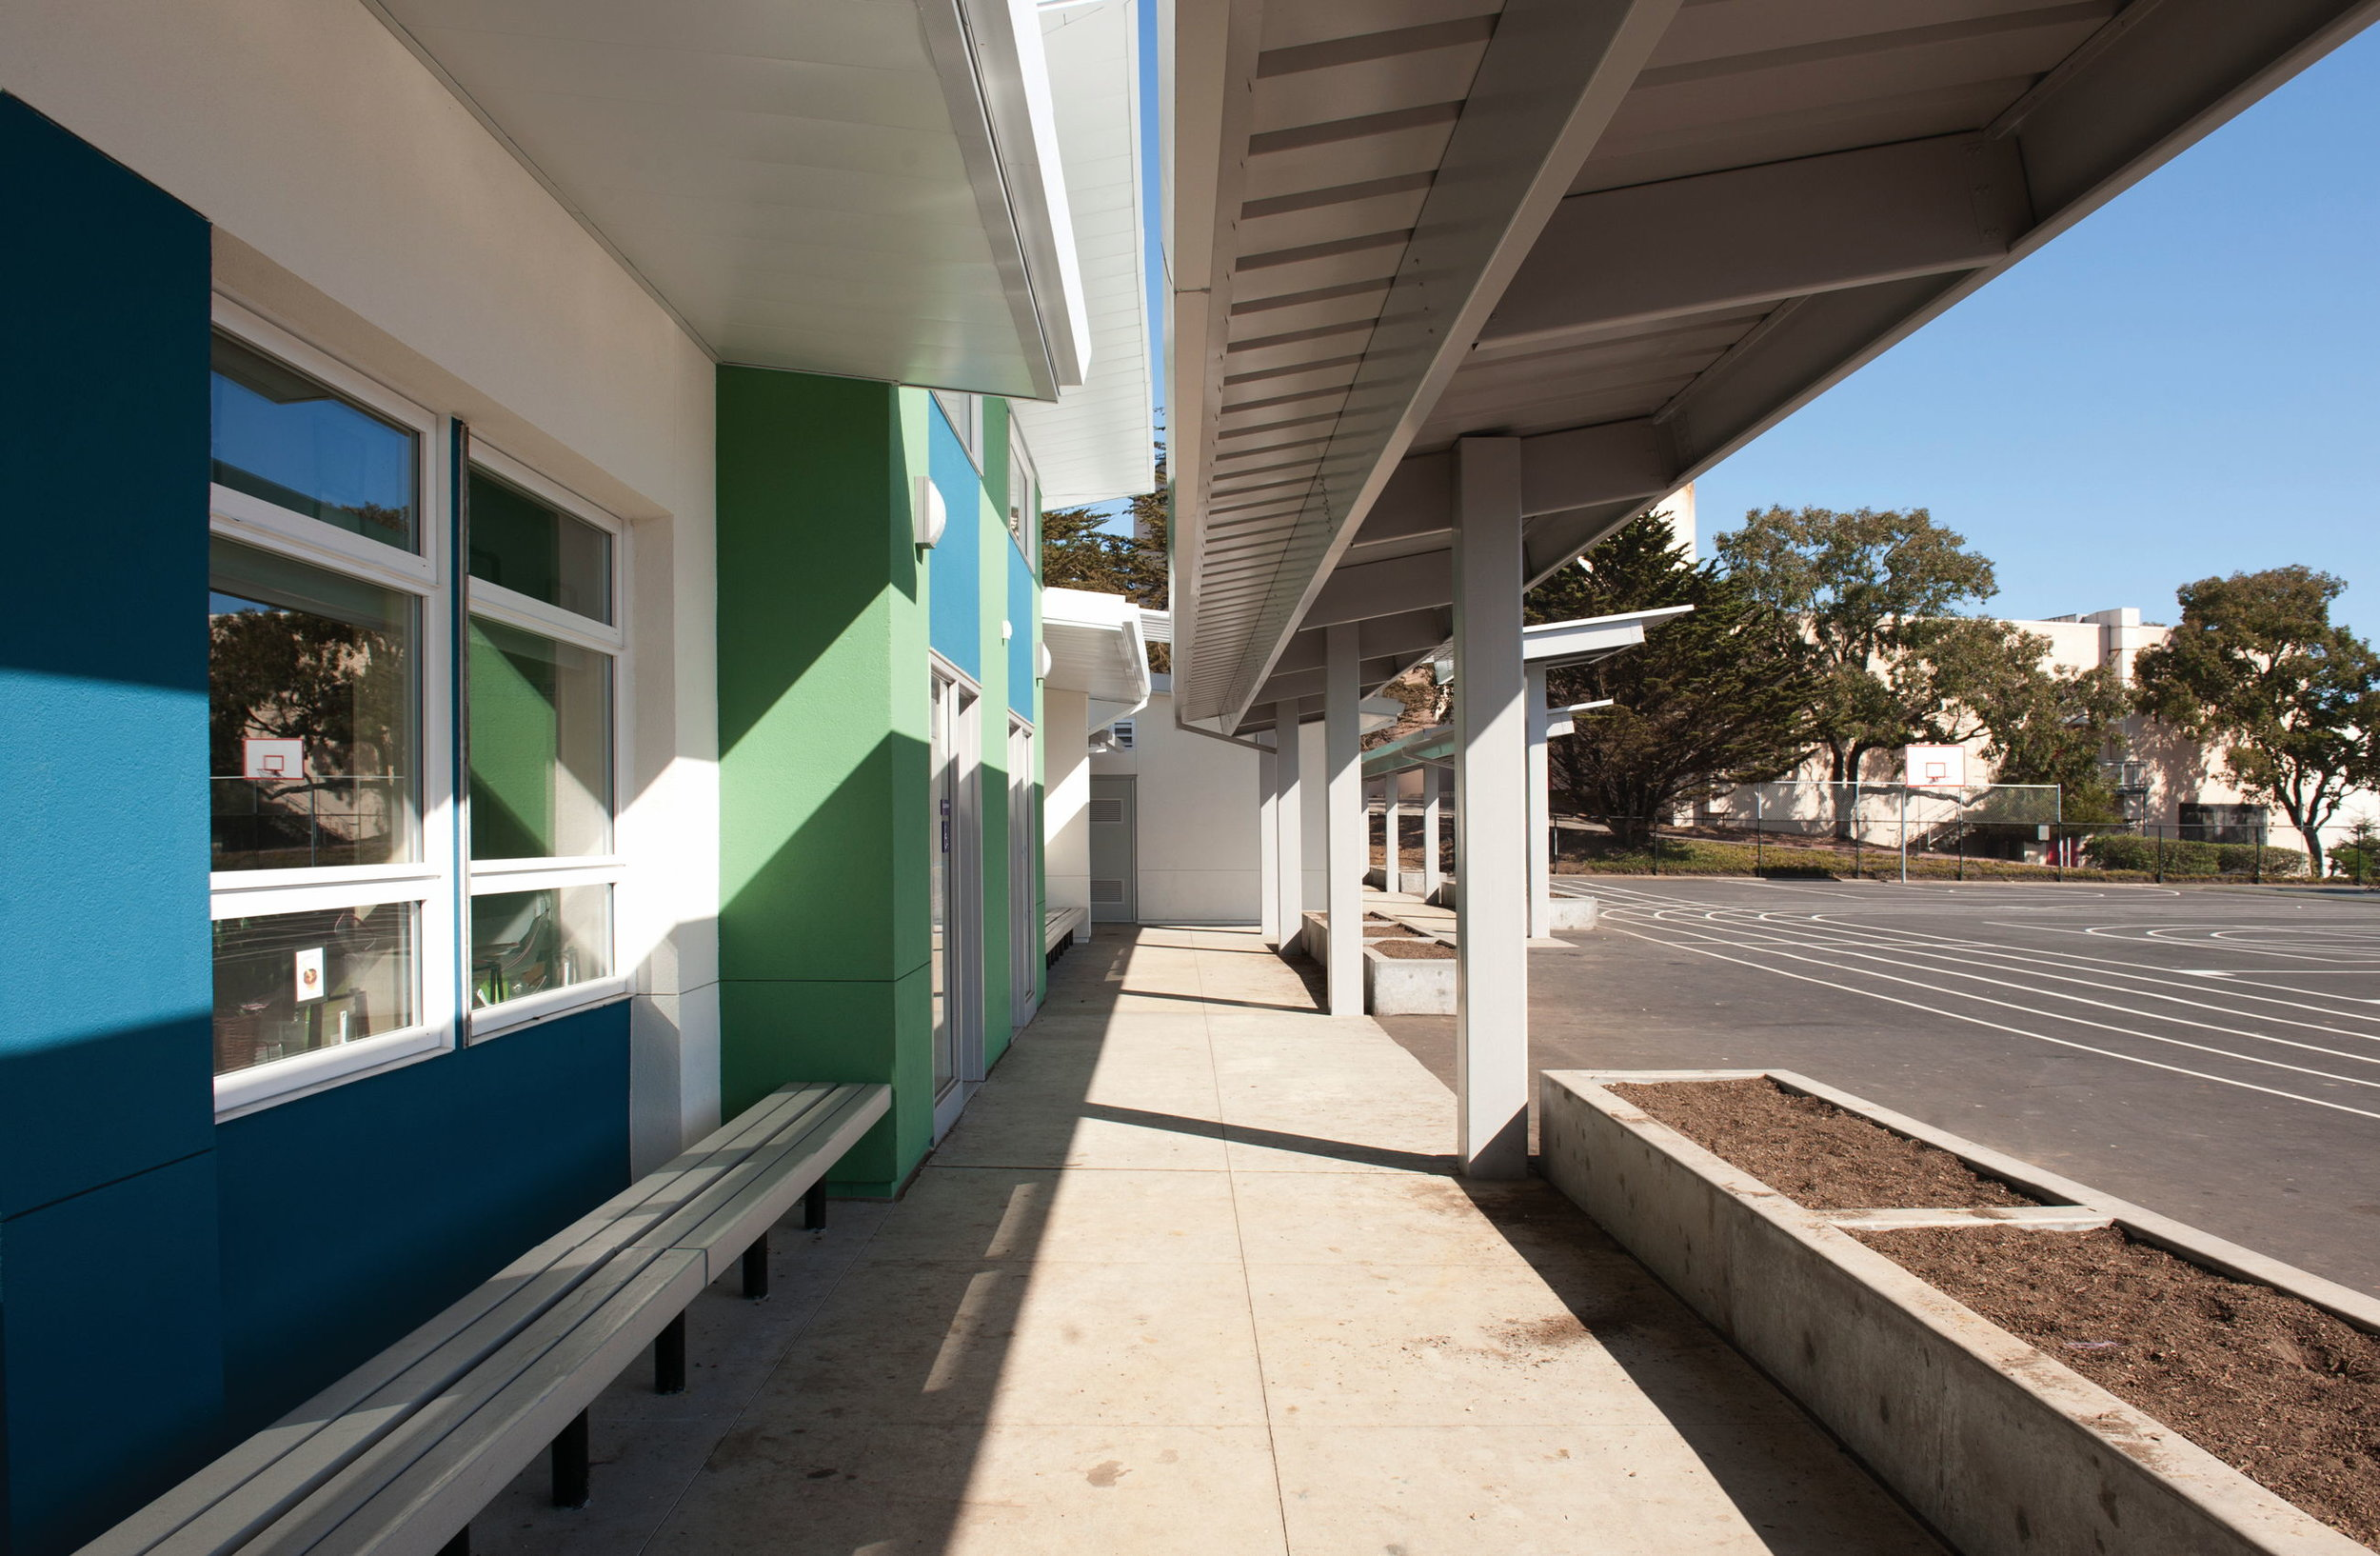 New classroom wing